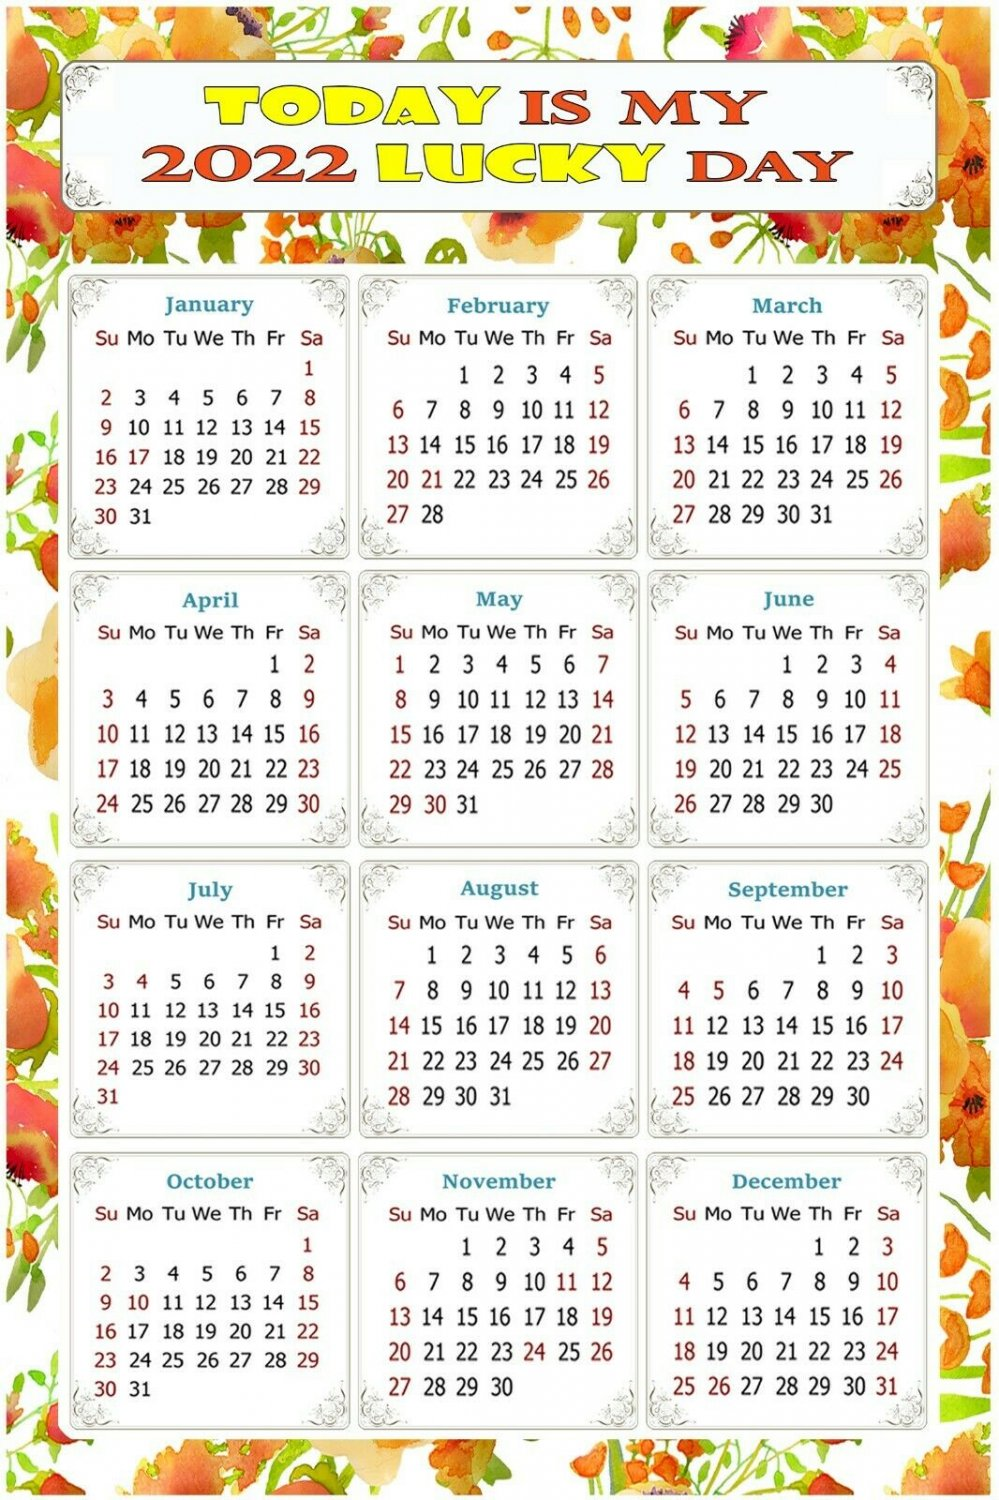 2022 Magnetic Calendar - Today is My Lucky Day - Themed 021 (5,25 x 8)